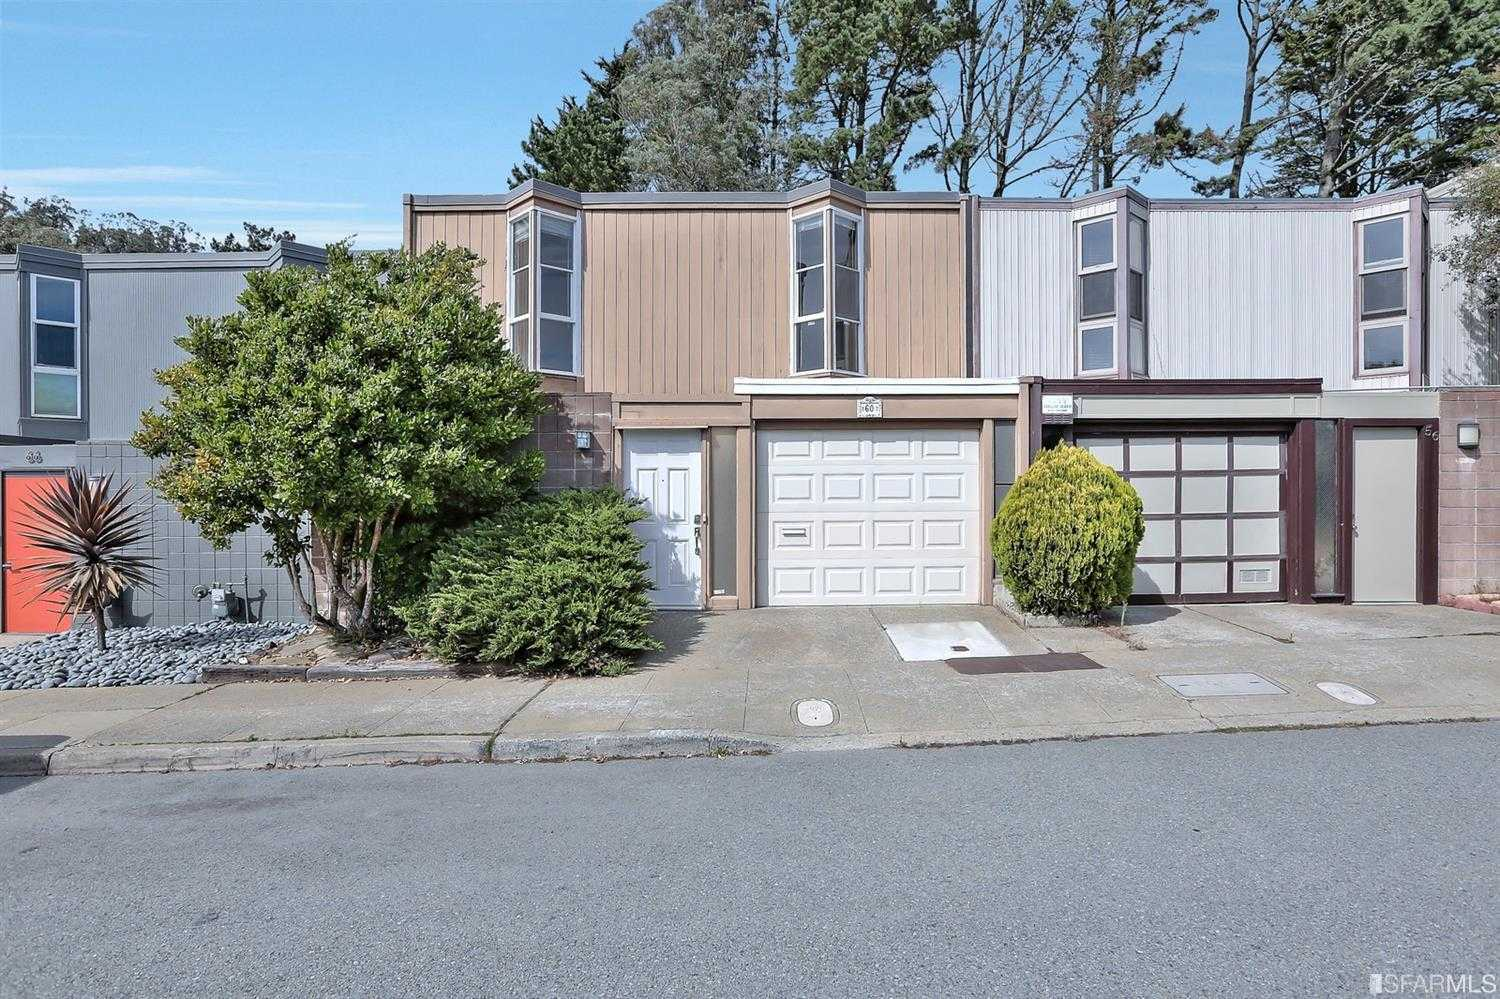 60 Amethyst Way San Francisco, CA 94131